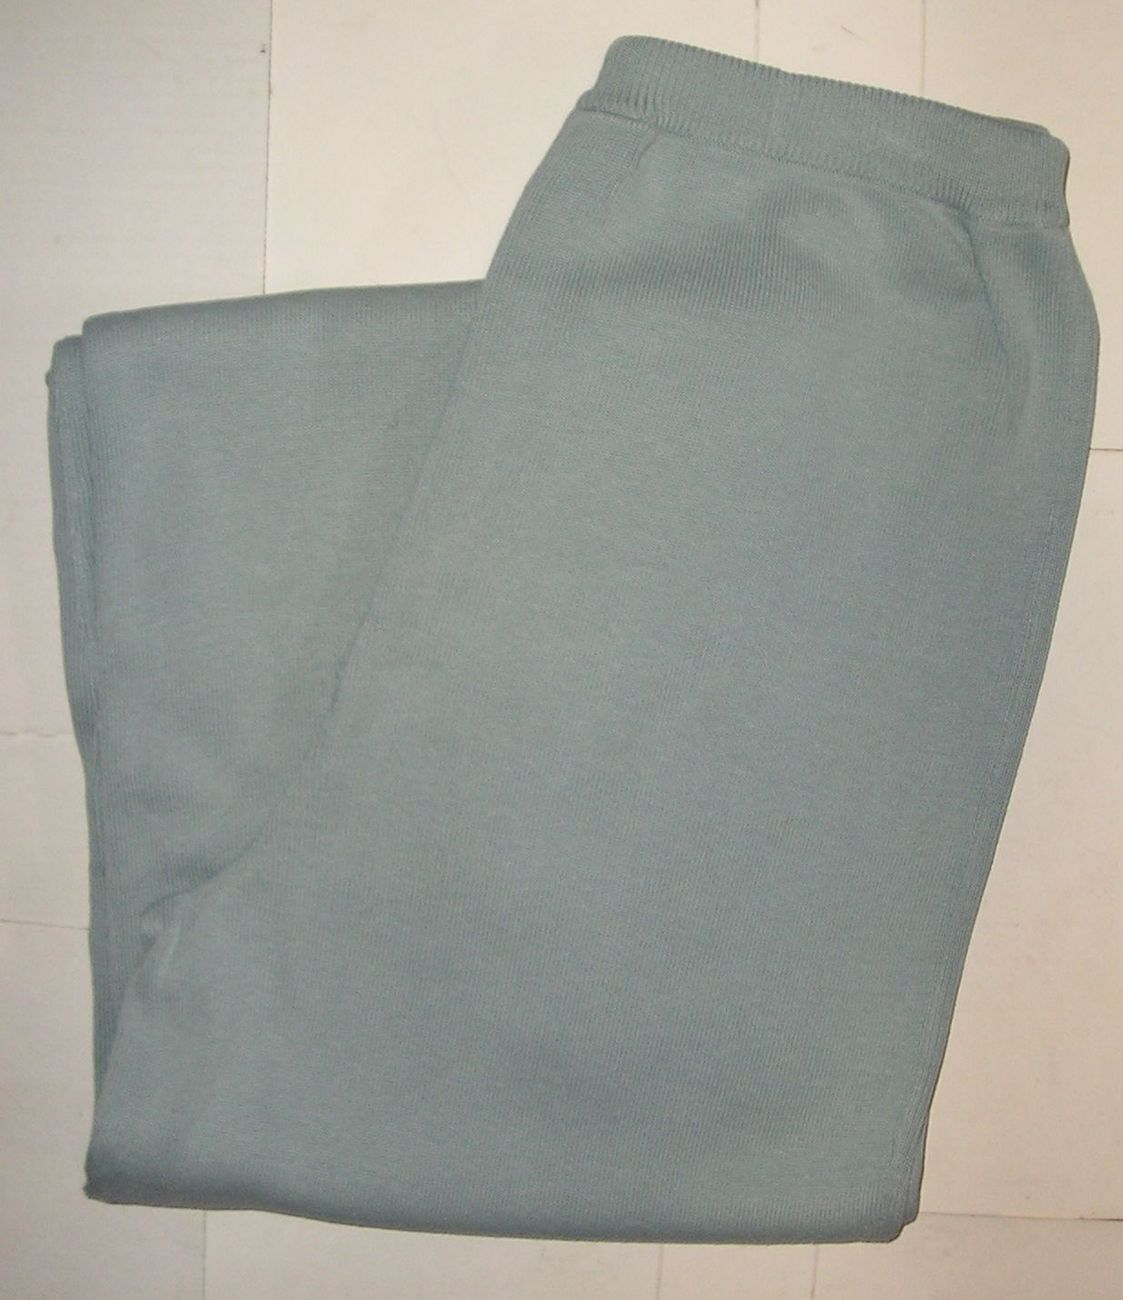 NORDSTROM Women's Knit Light Blue Pants Size S Small  / 6 NEW WITHOUT TAG